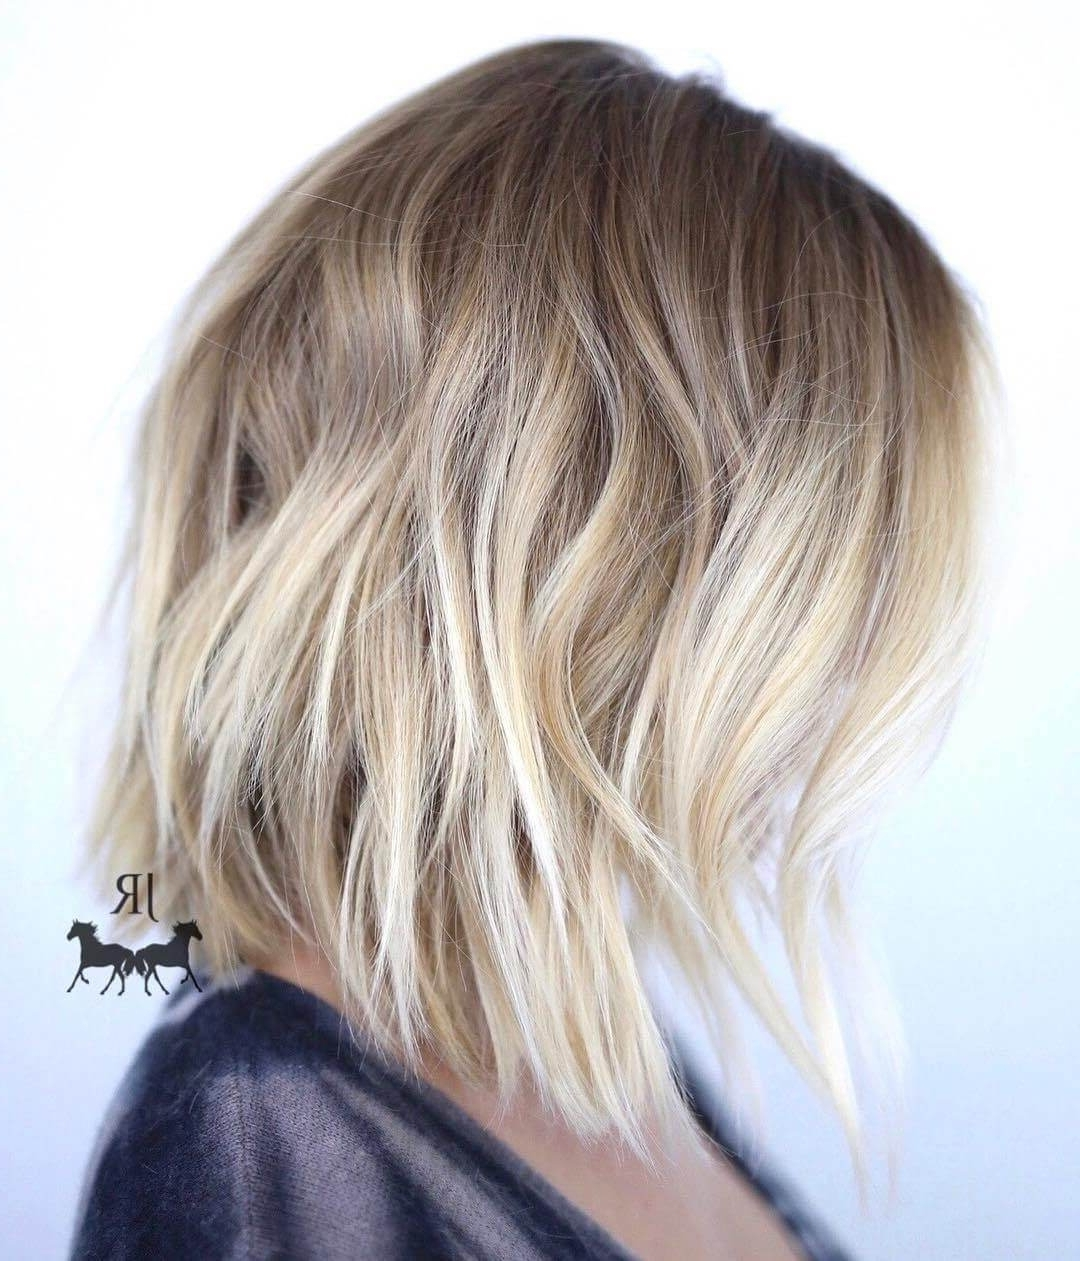 50 Fresh Short Blonde Hair Ideas To Update Your Style In 2018 Intended For Widely Used Textured Platinum Blonde Bob Hairstyles (View 4 of 20)